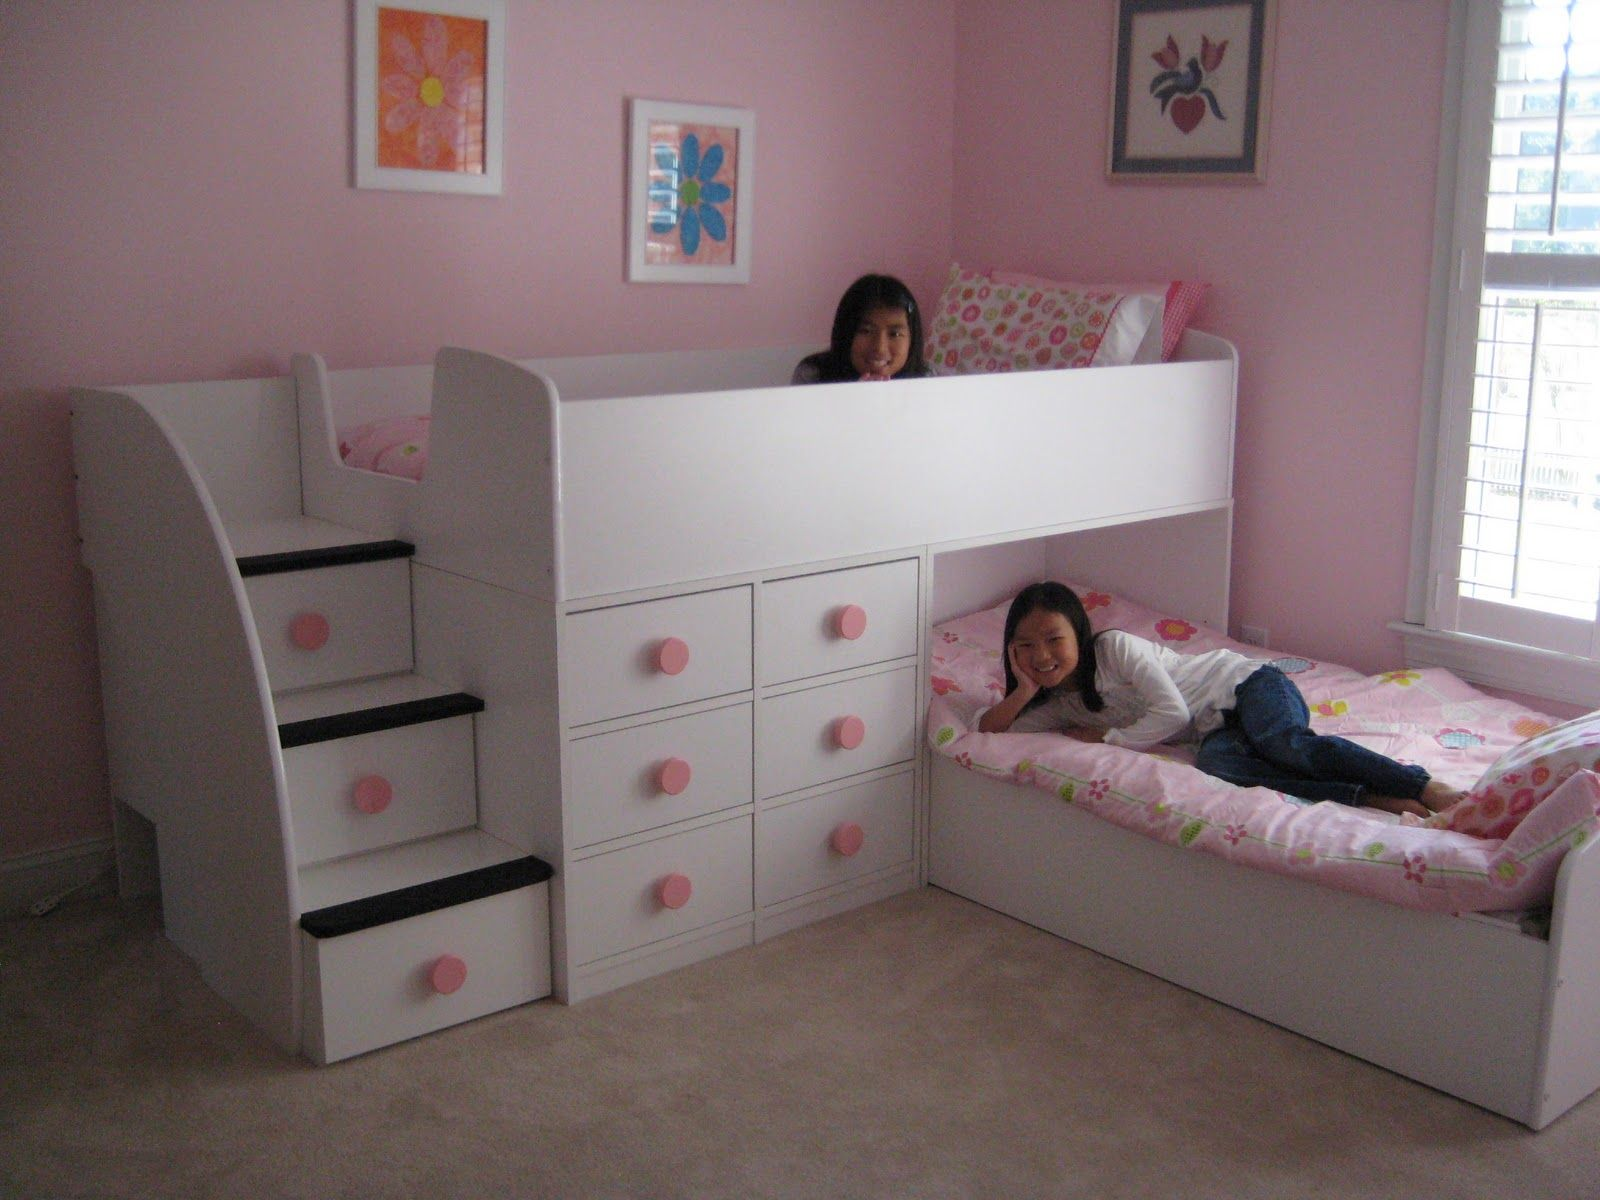 Double deck bedroom for kids girls - Lavender Linens On White Bunk Beds Pbkids Beds For Girls For